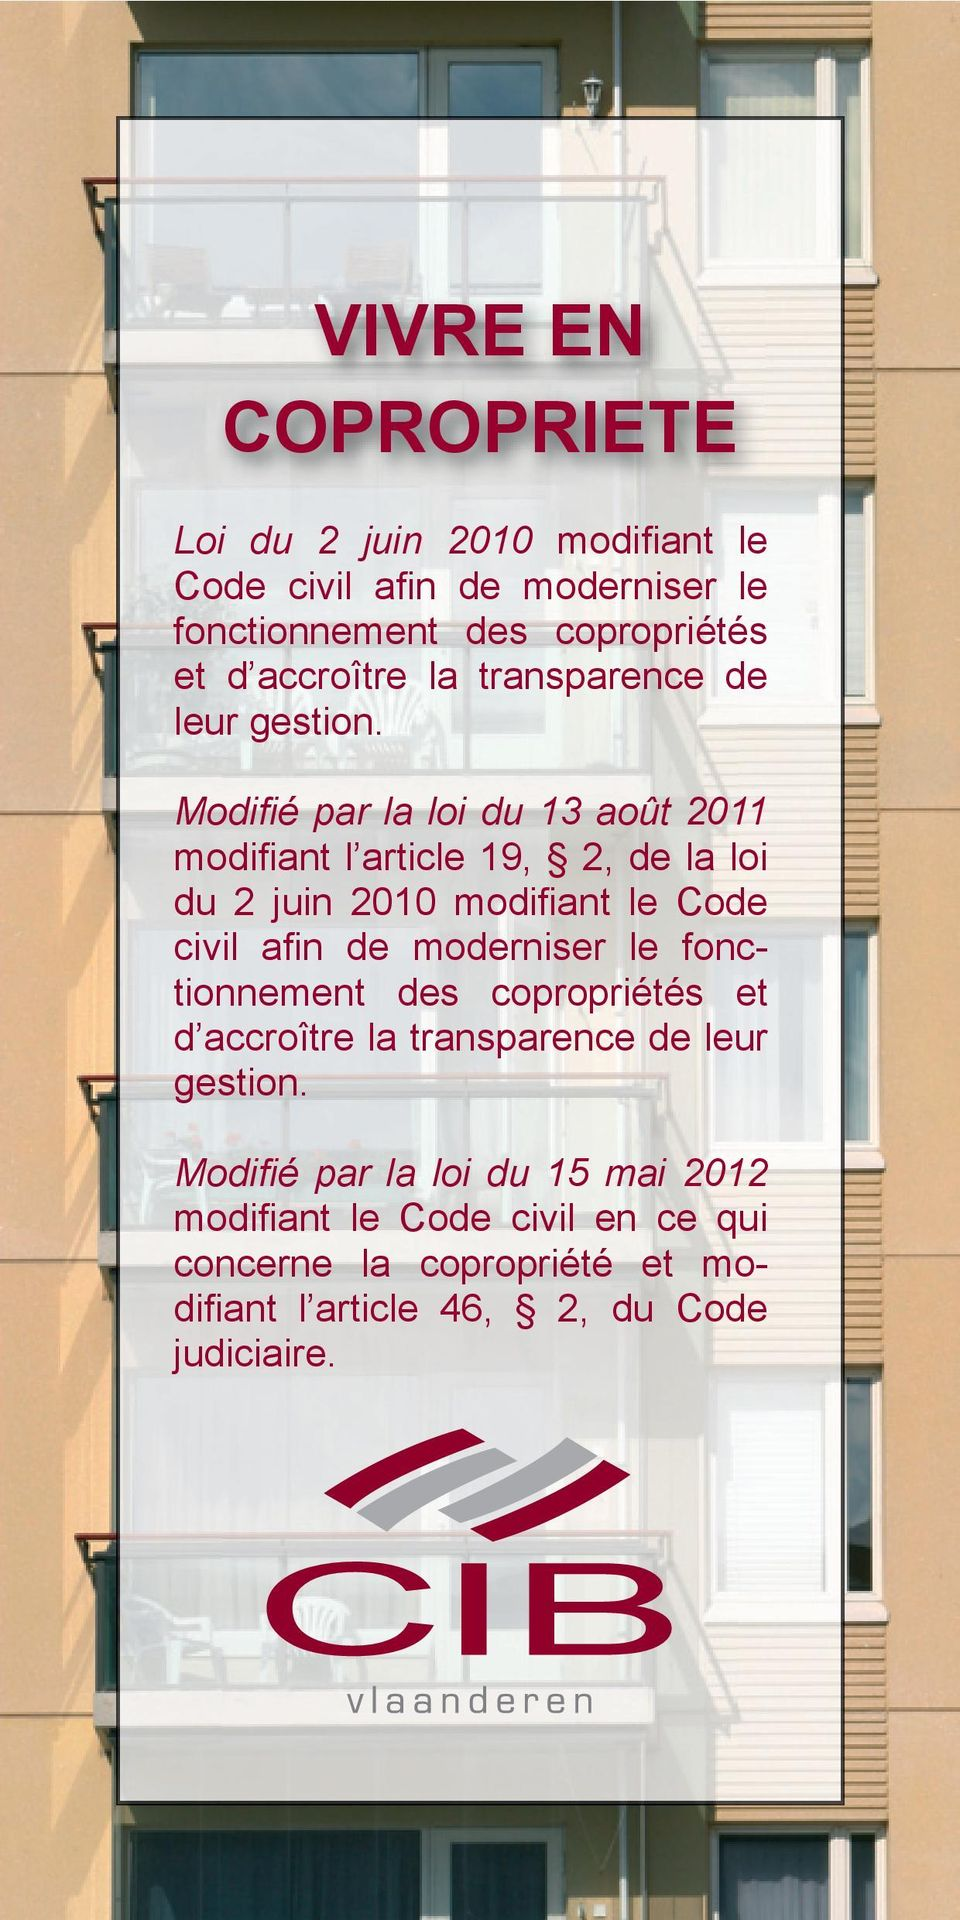 teneinde de werking Modifié van par de la mede-eigendom loi du 13 août 2011 modifiant te l article moderniseren 19, 2, de la loi du 2 juin 2010 modifiant le Code civil en